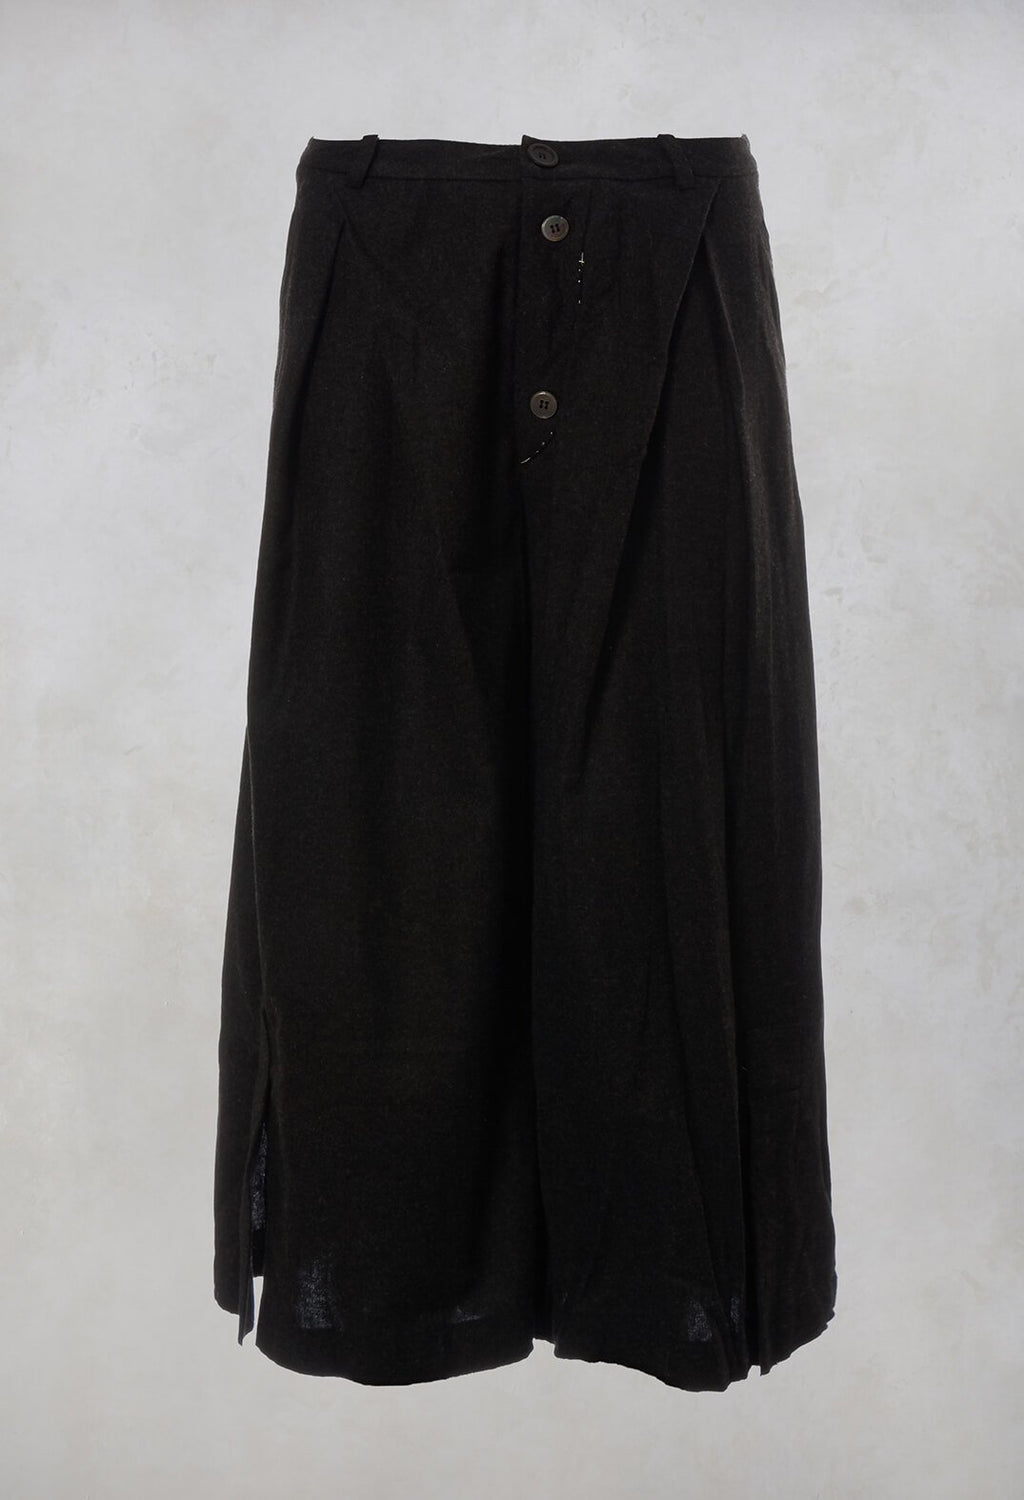 Culottes in Original